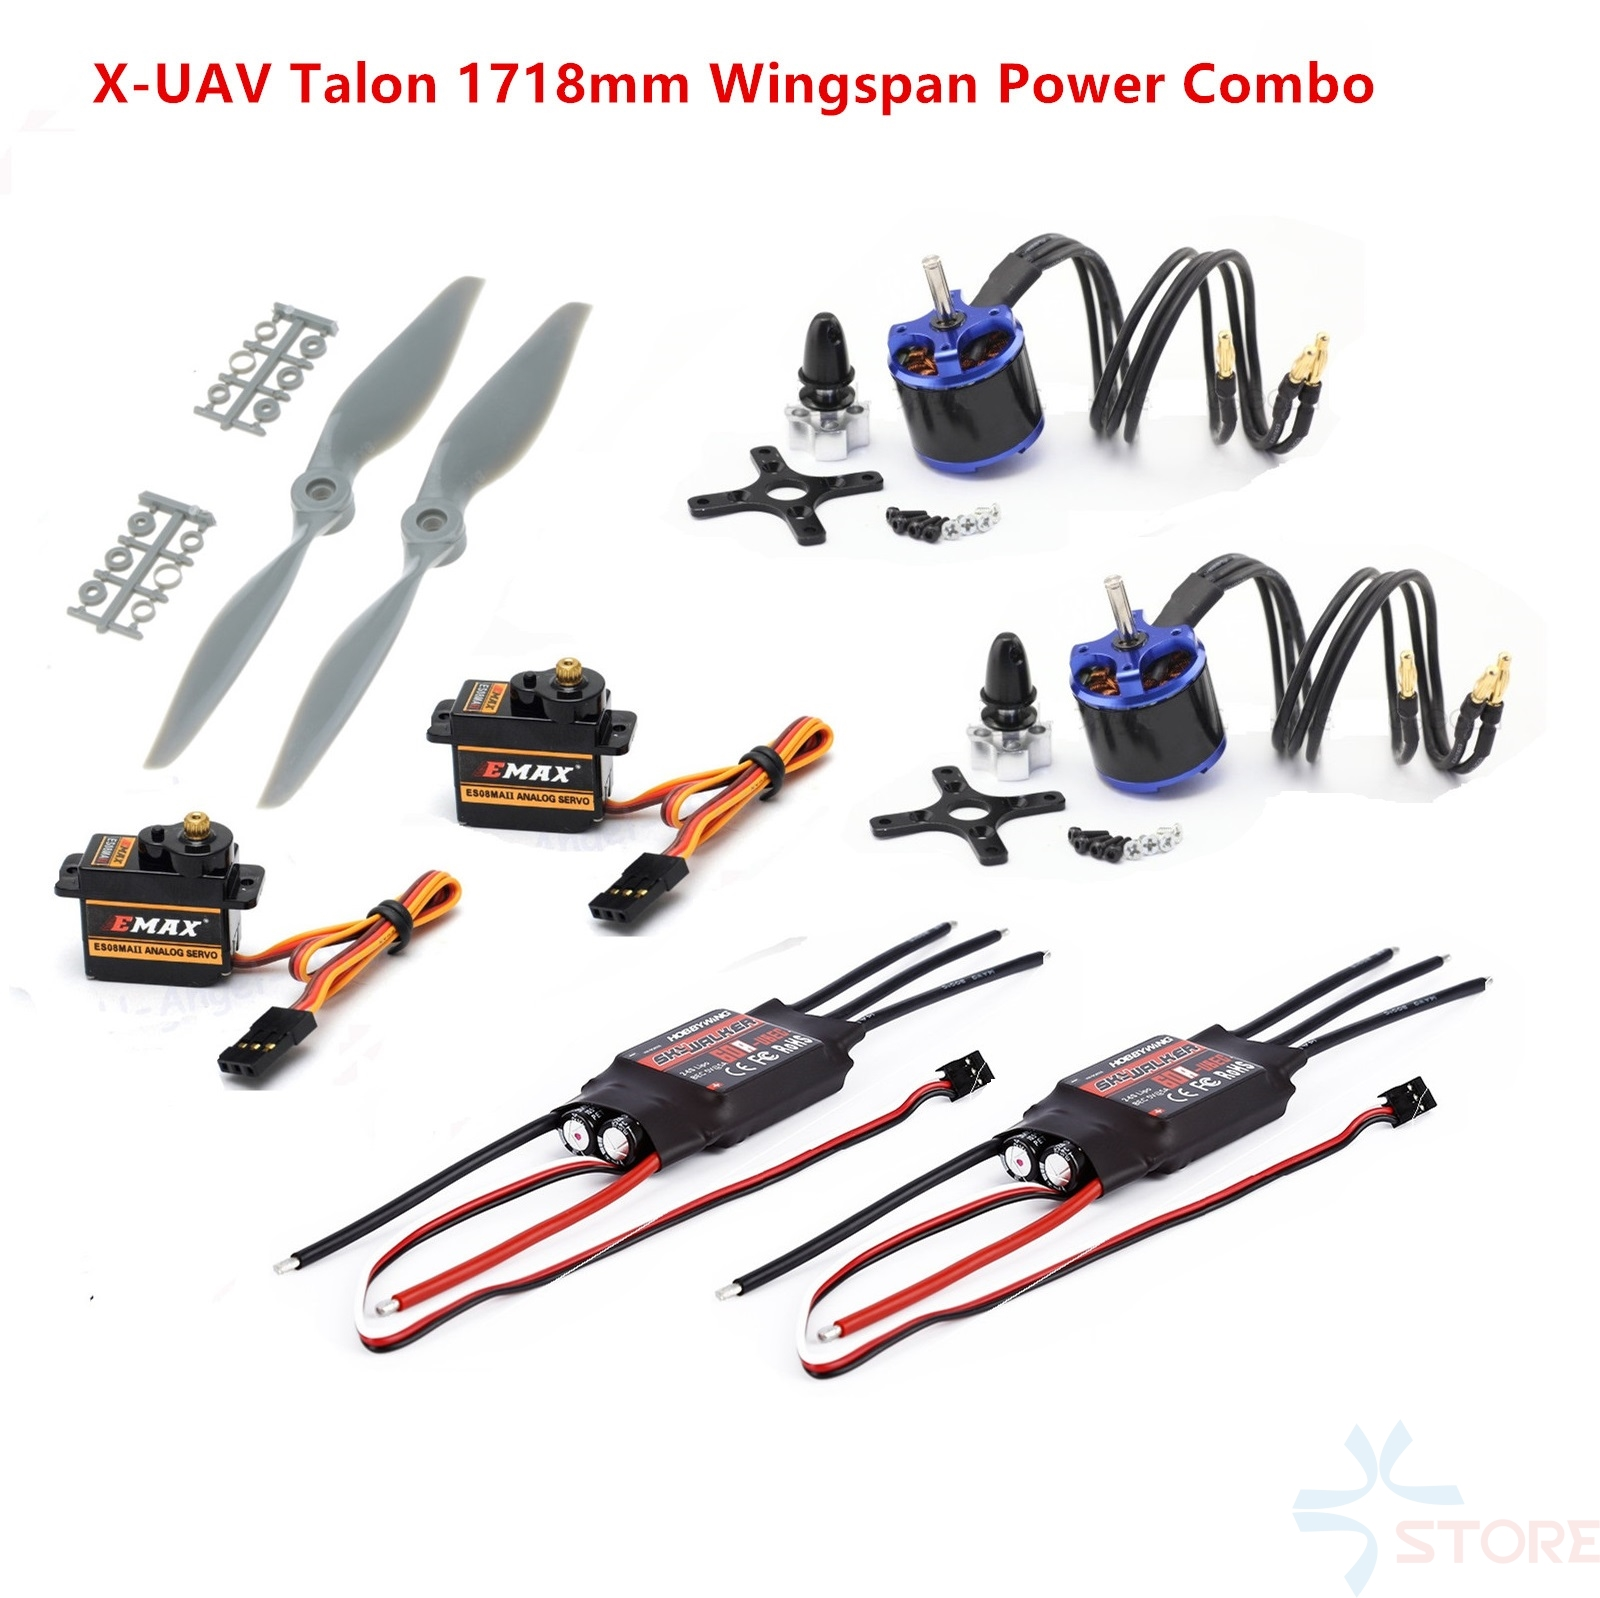 Fixed wing Power Combo For X-UAV Talon EPO 1718mm 3720 Motor KV1250+9x6 APC propeller+60A ESC+ 2psc ES08MA Servos fpv x uav talon uav 1720mm fpv plane gray white version flying glider epo modle rc model airplane